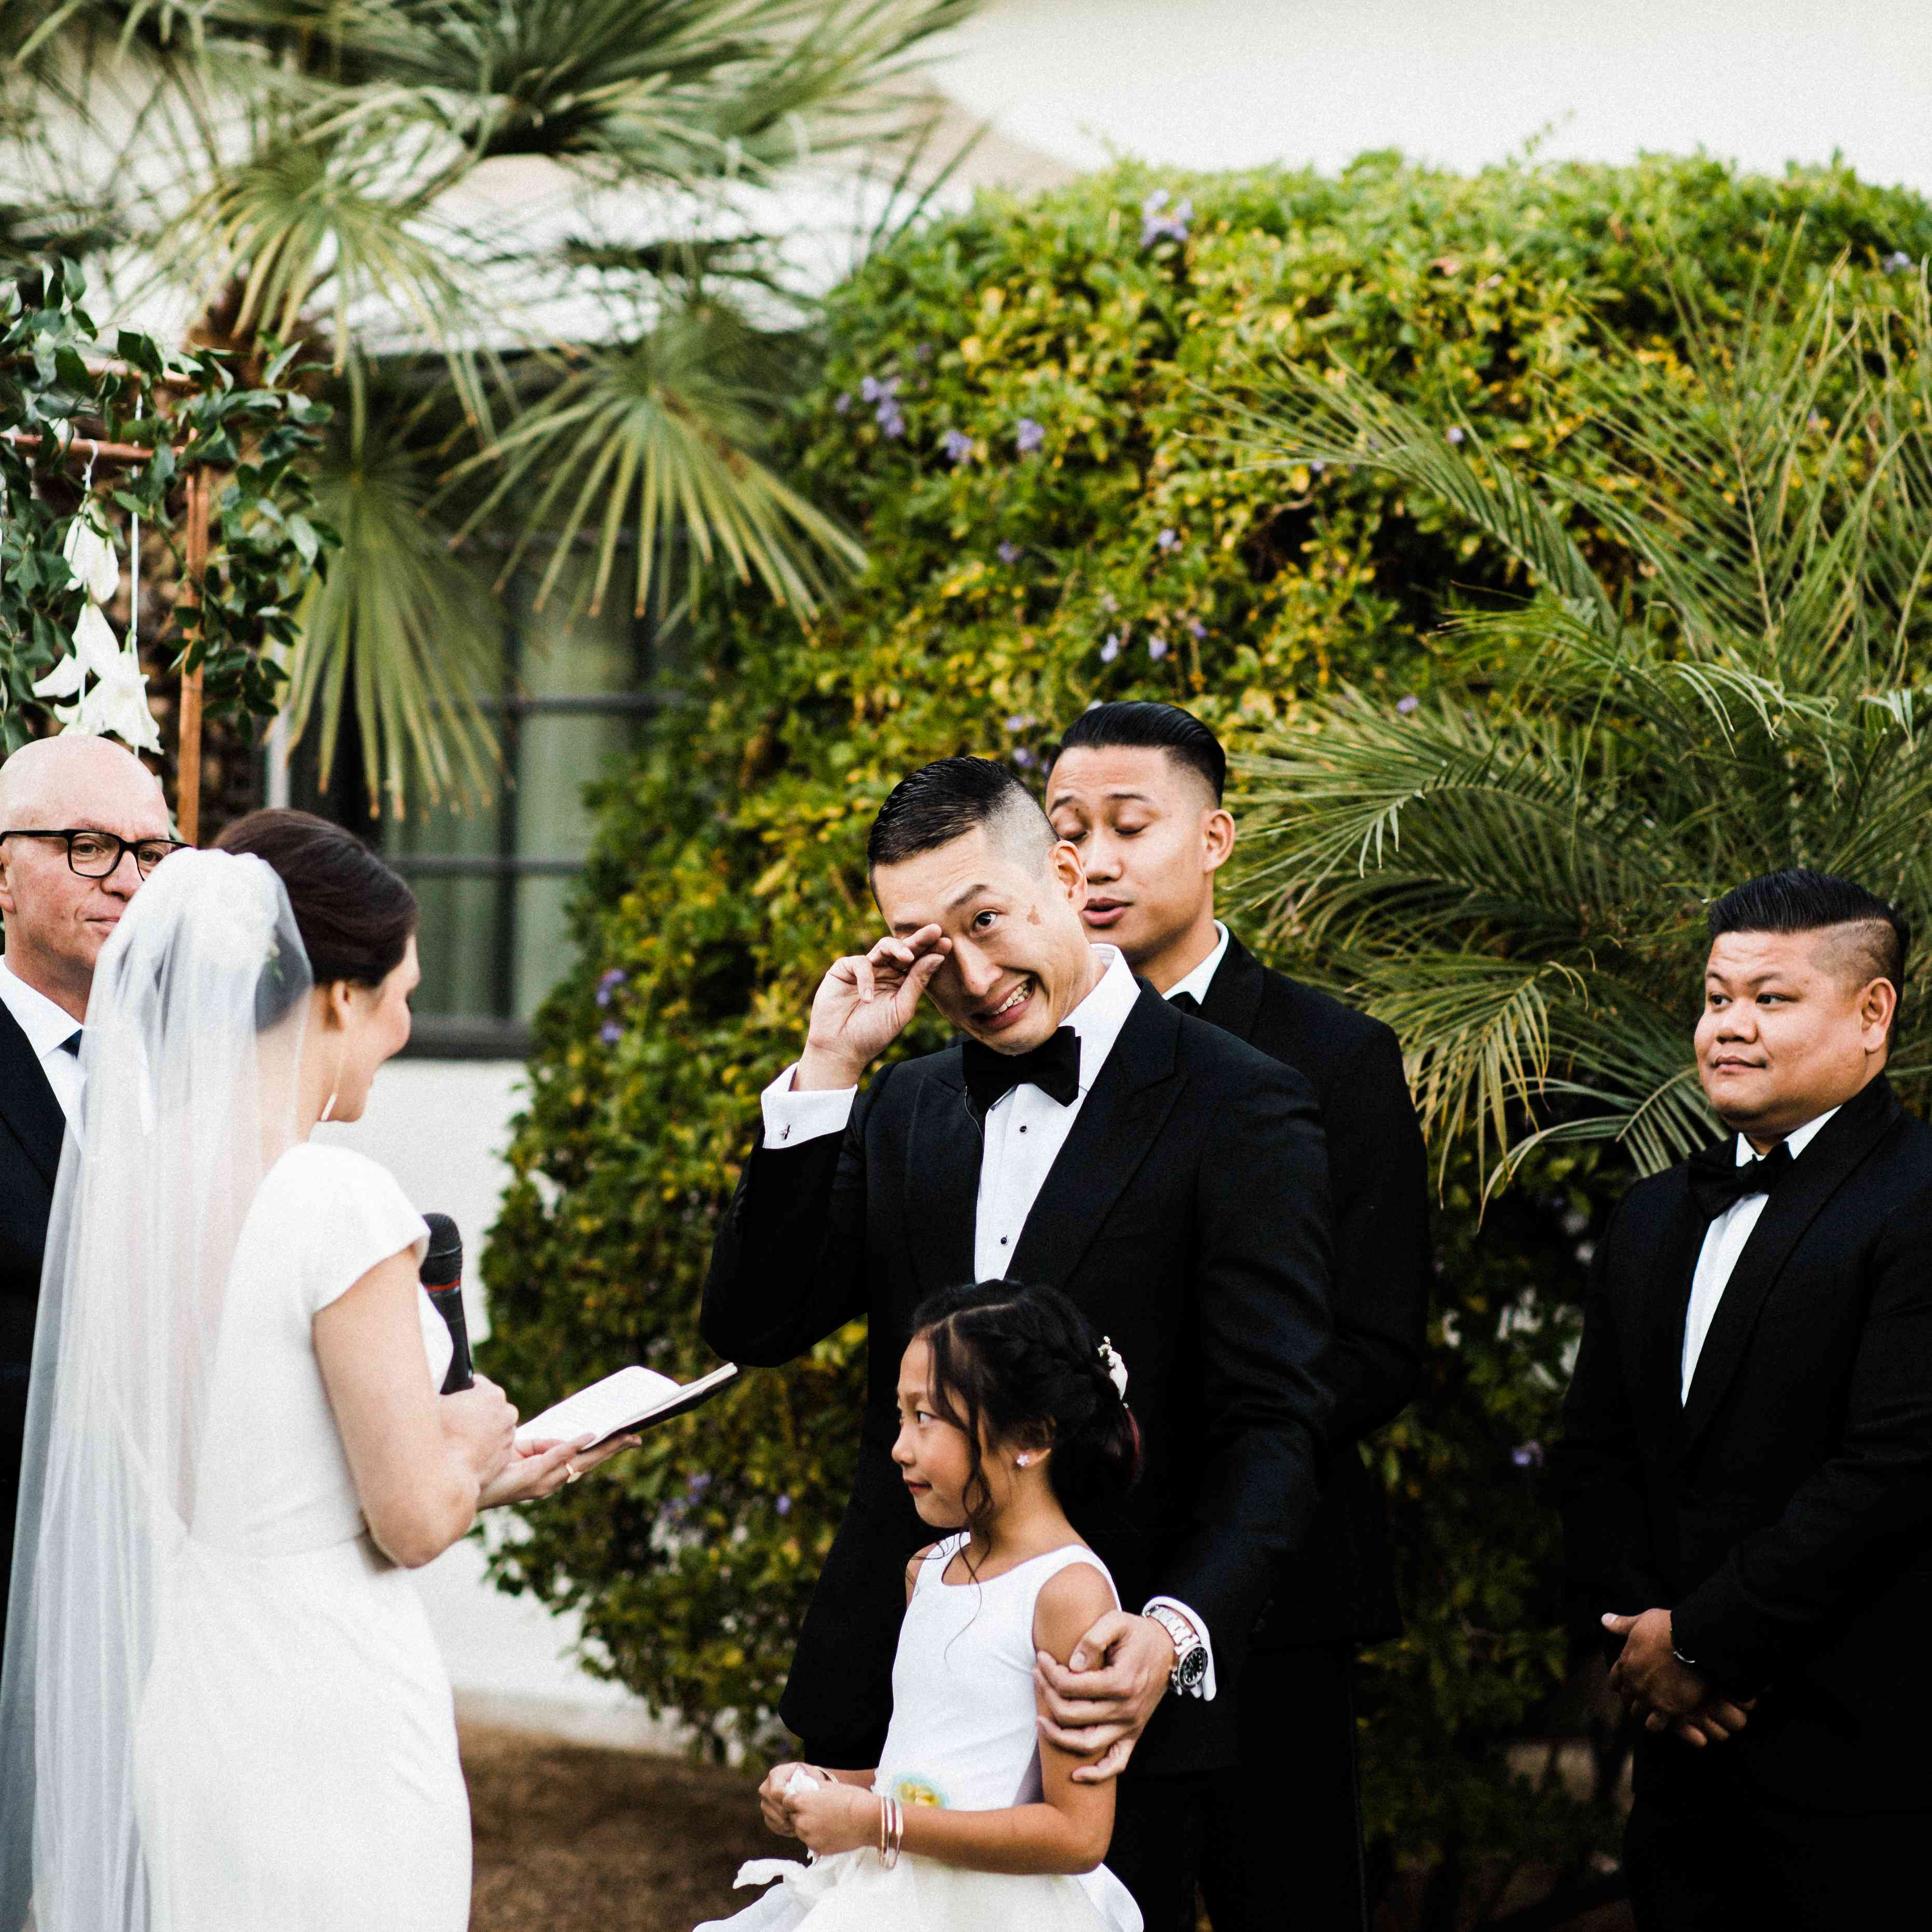 Groom getting emotional and wiping tears during wedding ceremony as bride reads her vows